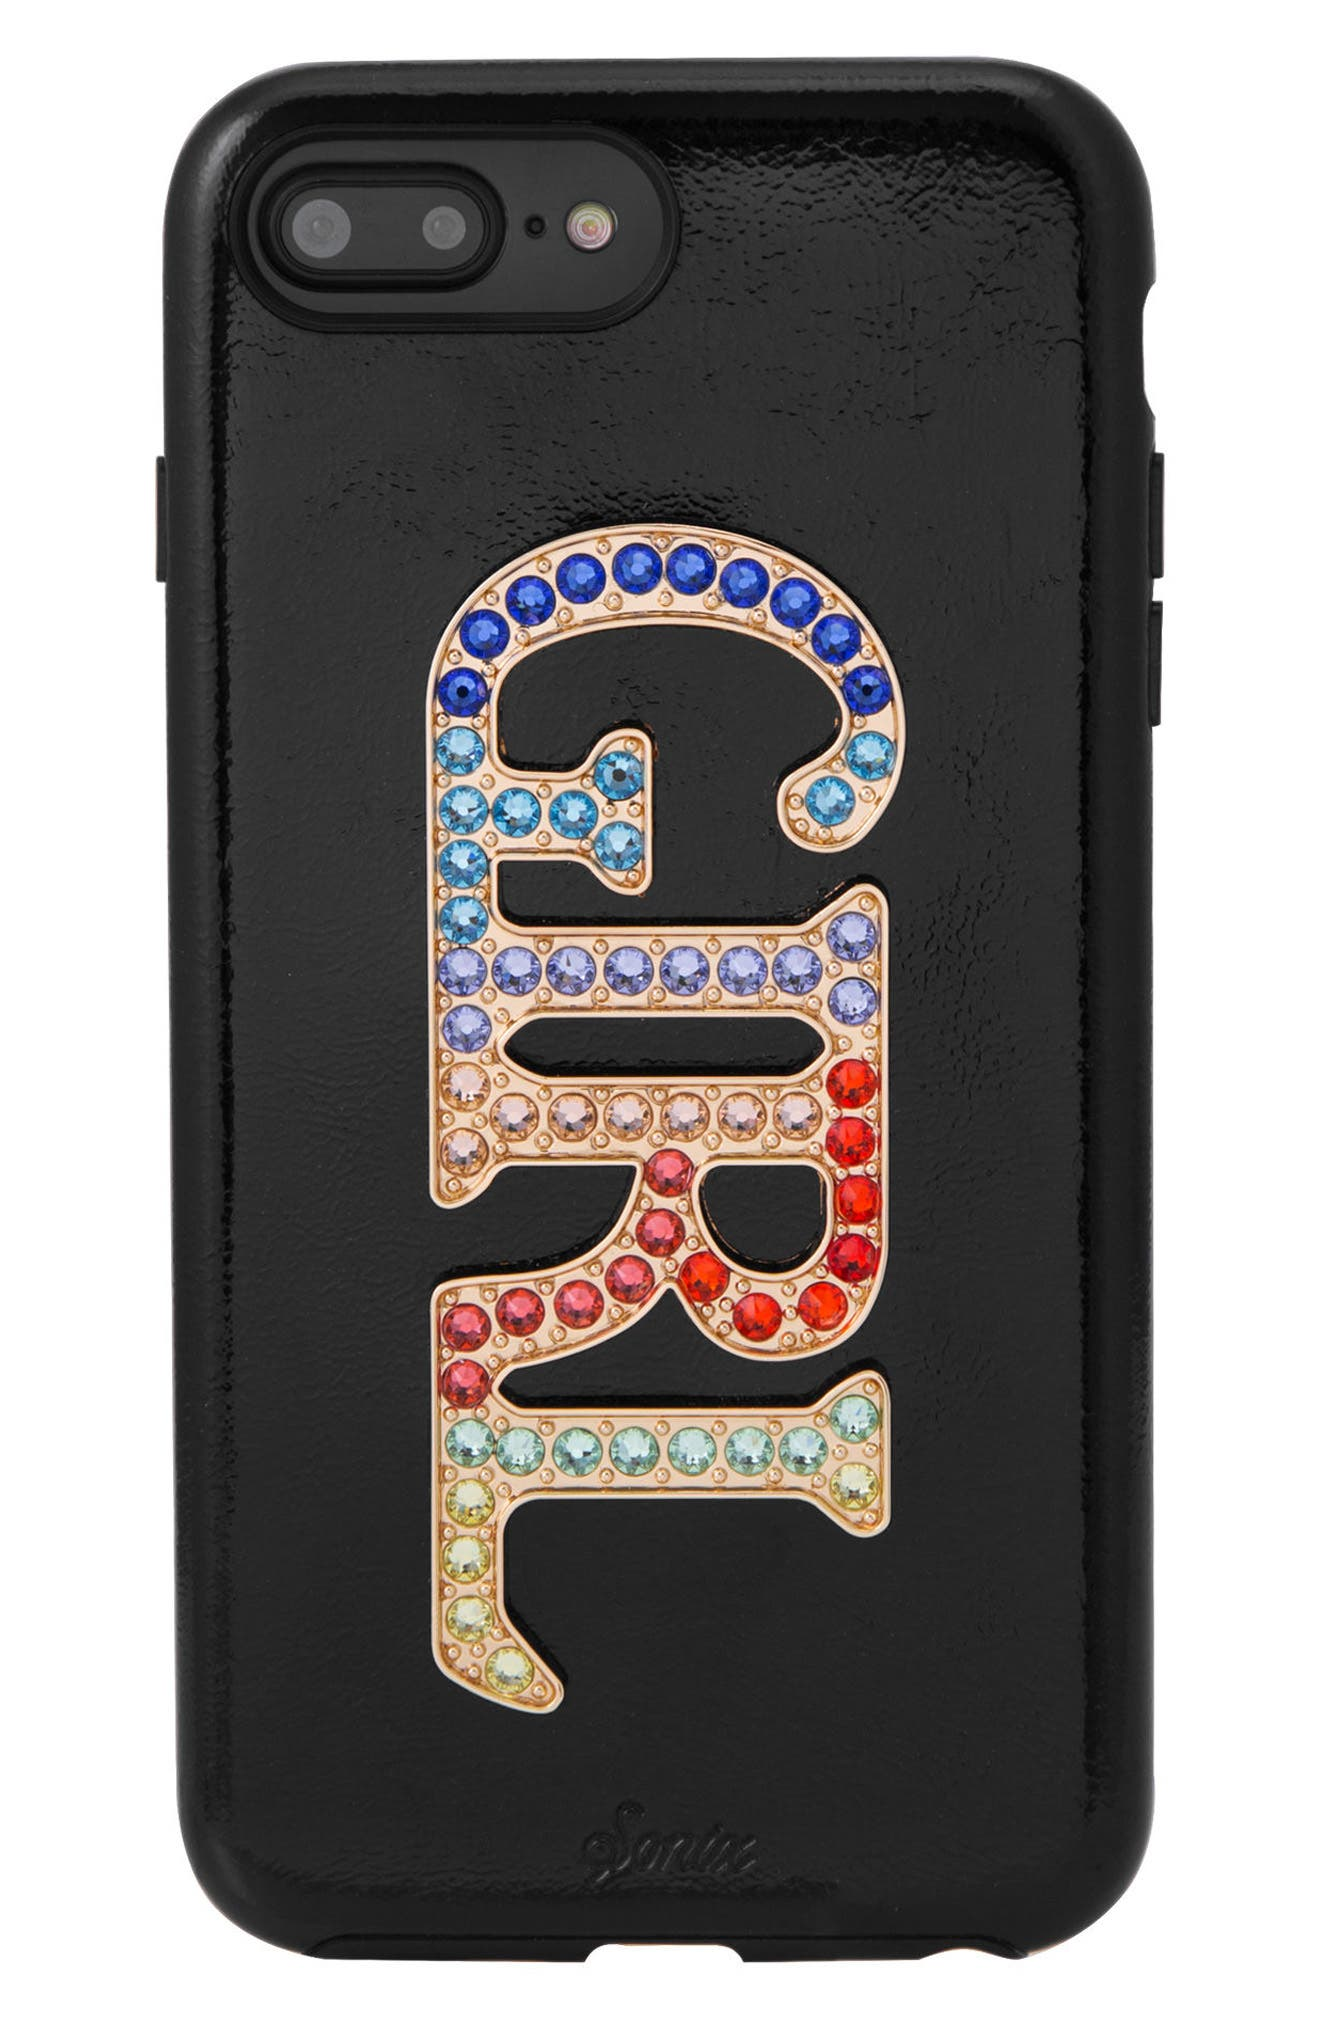 Girl Crystal Embellished iPhone 6/6s/7/8 Plus Case,                             Main thumbnail 1, color,                             Black/ Multi